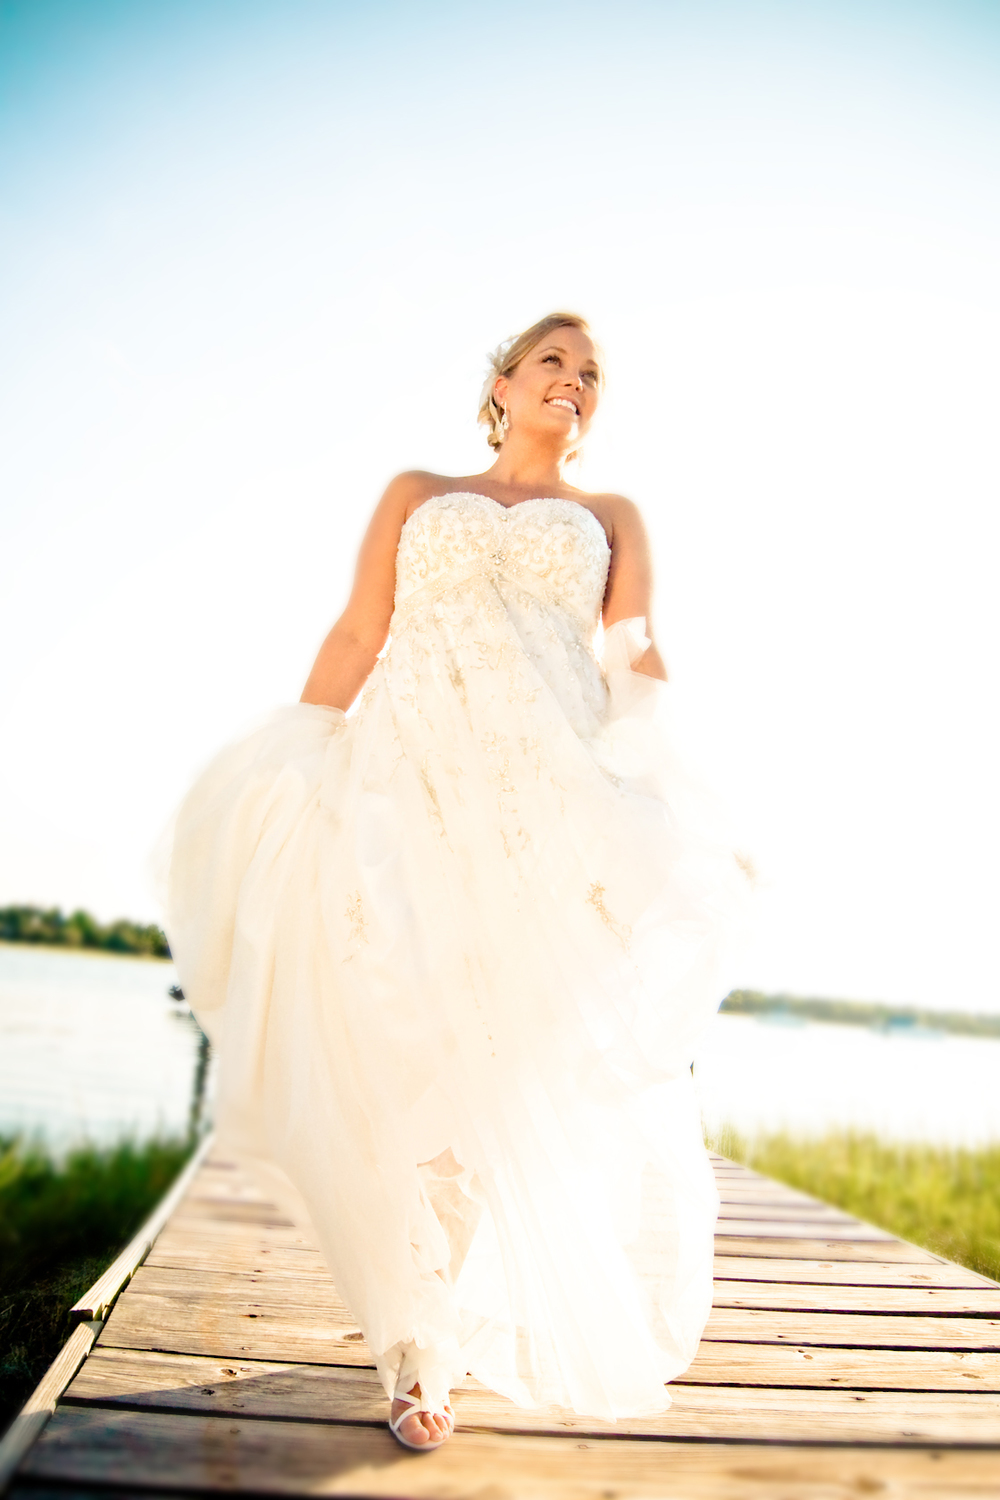 richard barlow photography - Bridal Portrait Photography Coastal North Carolina